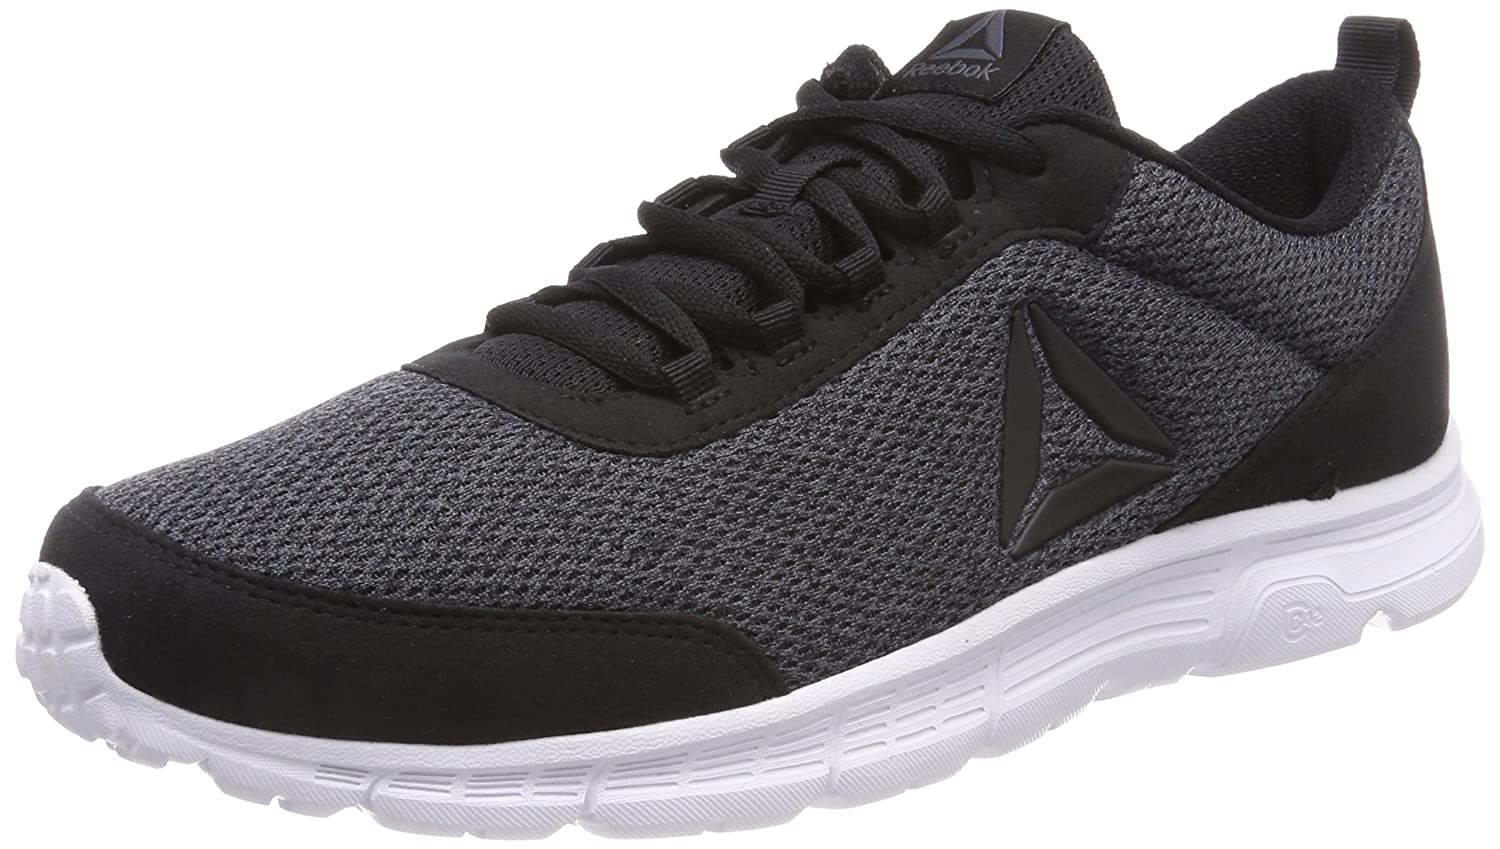 Reebok Men s Speedlux 3.0 Running Shoes  Buy Online at Low Prices in India  - Amazon.in b15a1b796